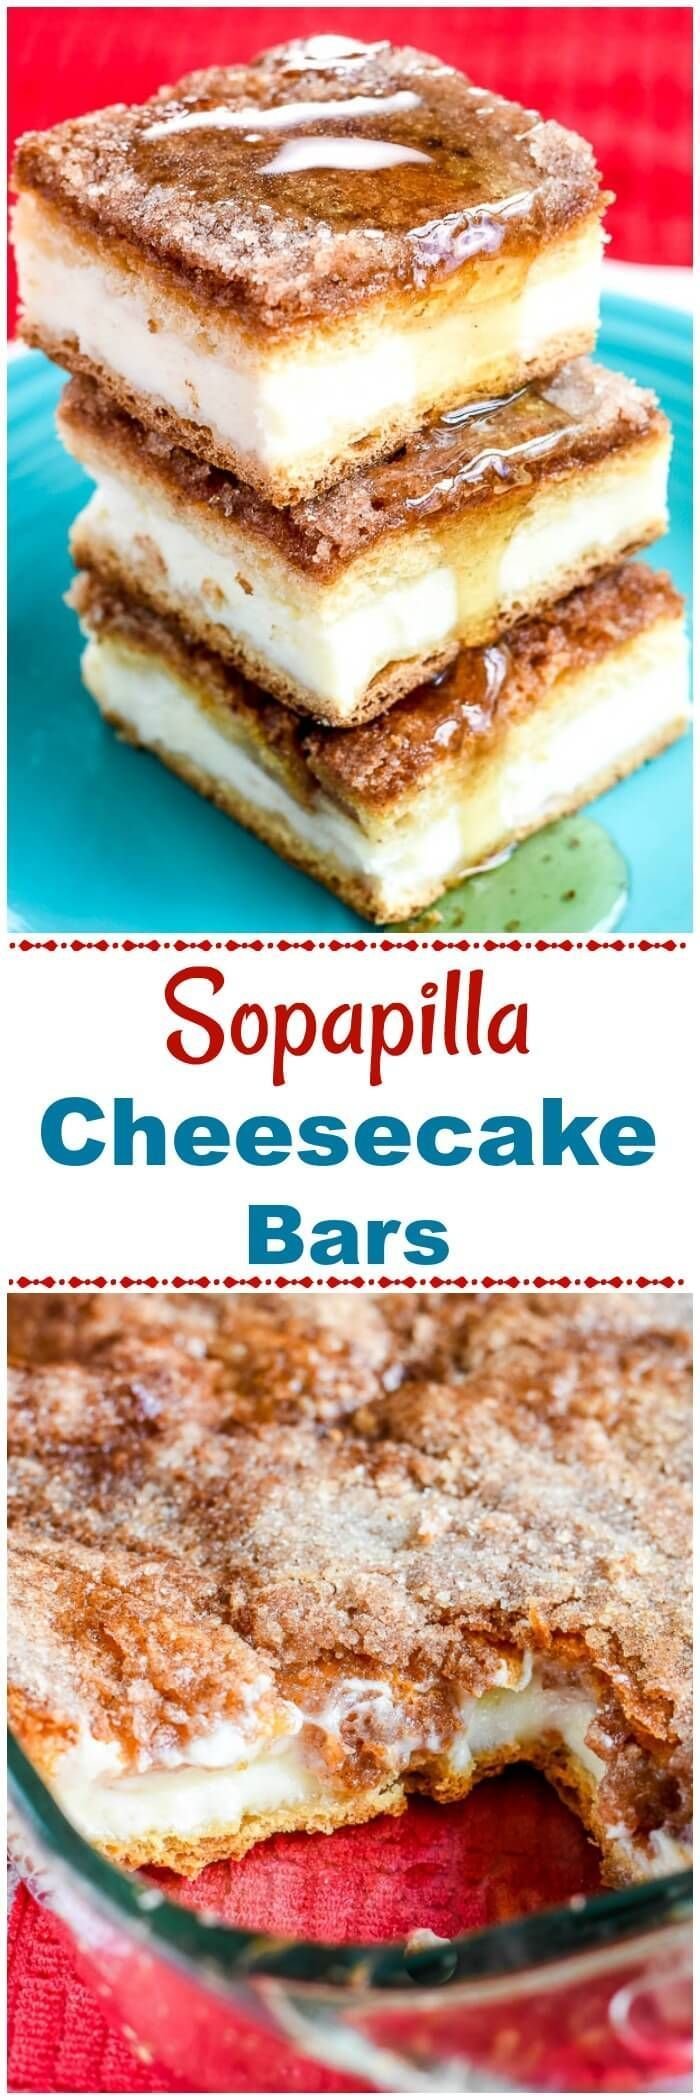 These Sopapilla Cheesecake Bars, inspired by the Mexican dessert called sopapillas, have a sweet, creamy cheesecake filling tucked between 2 crescent roll pastry sheets, and are topped with butter, cinnamon, and sugar and drizzled with honey. via @flavorm